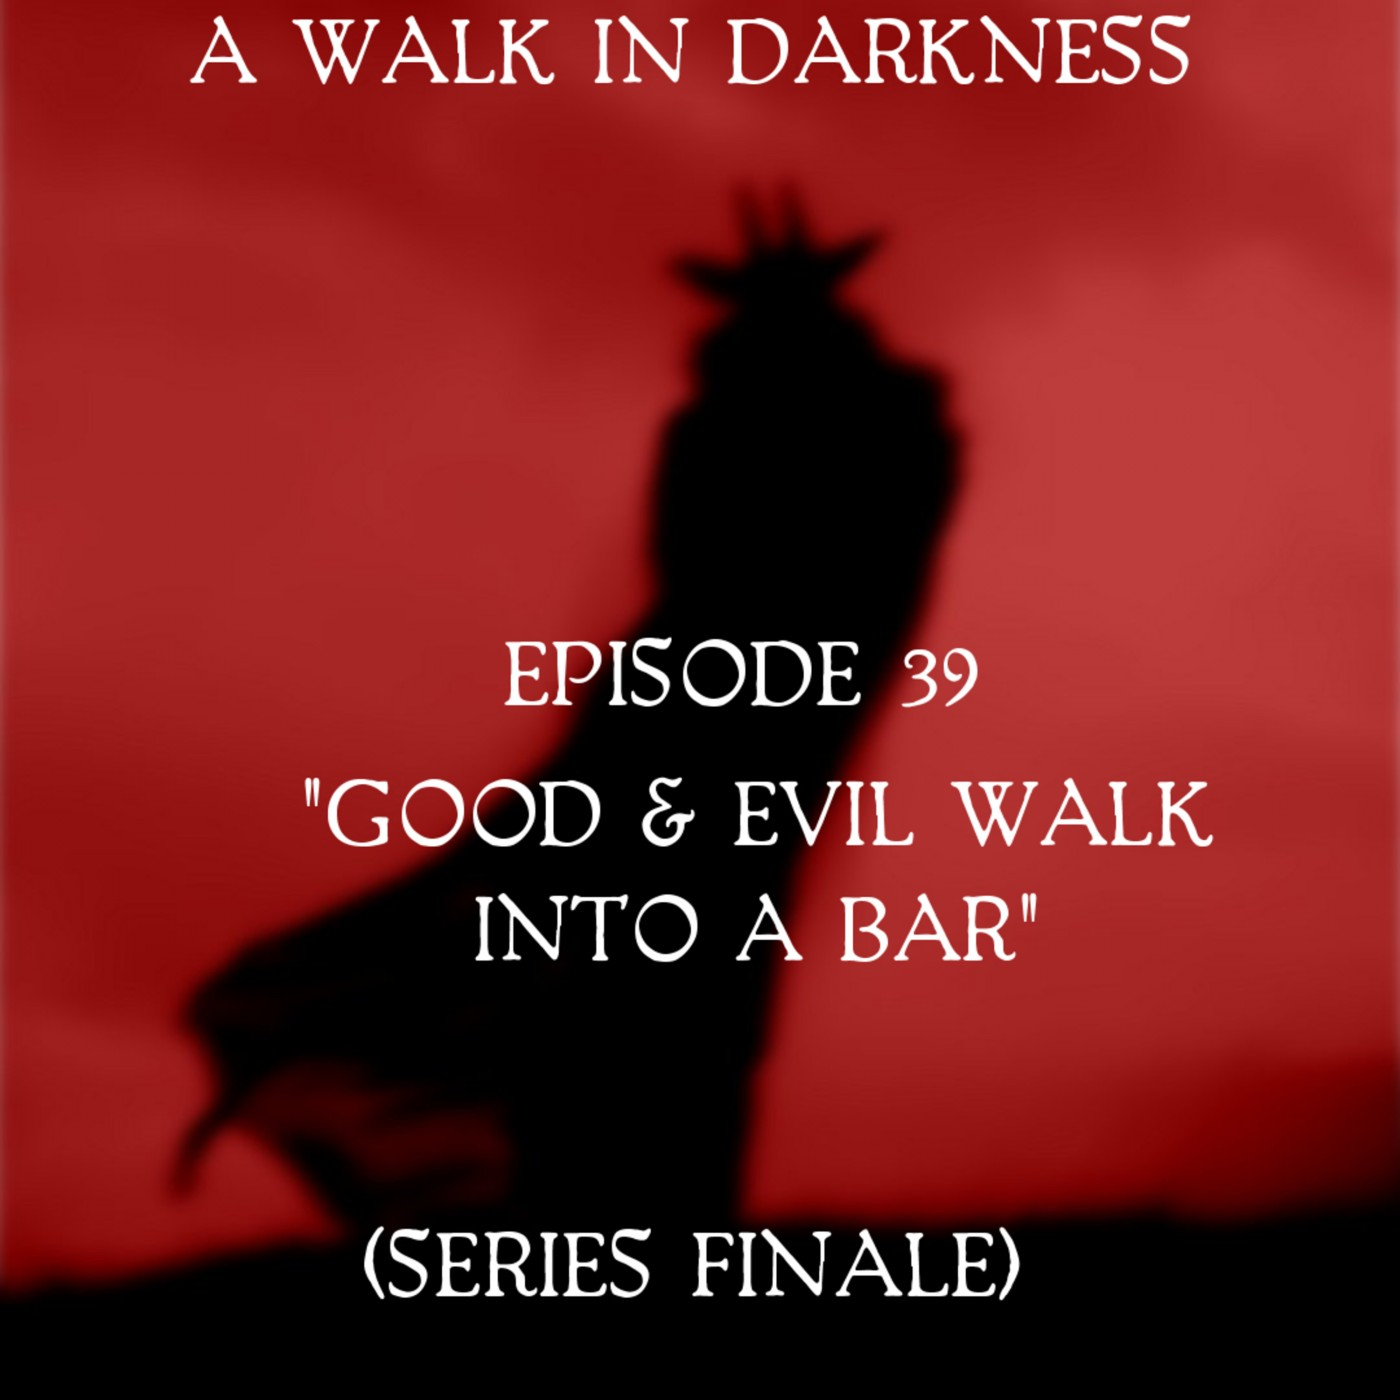 Good And Evil Walk Into A Bar (Episode 39) Series Finale